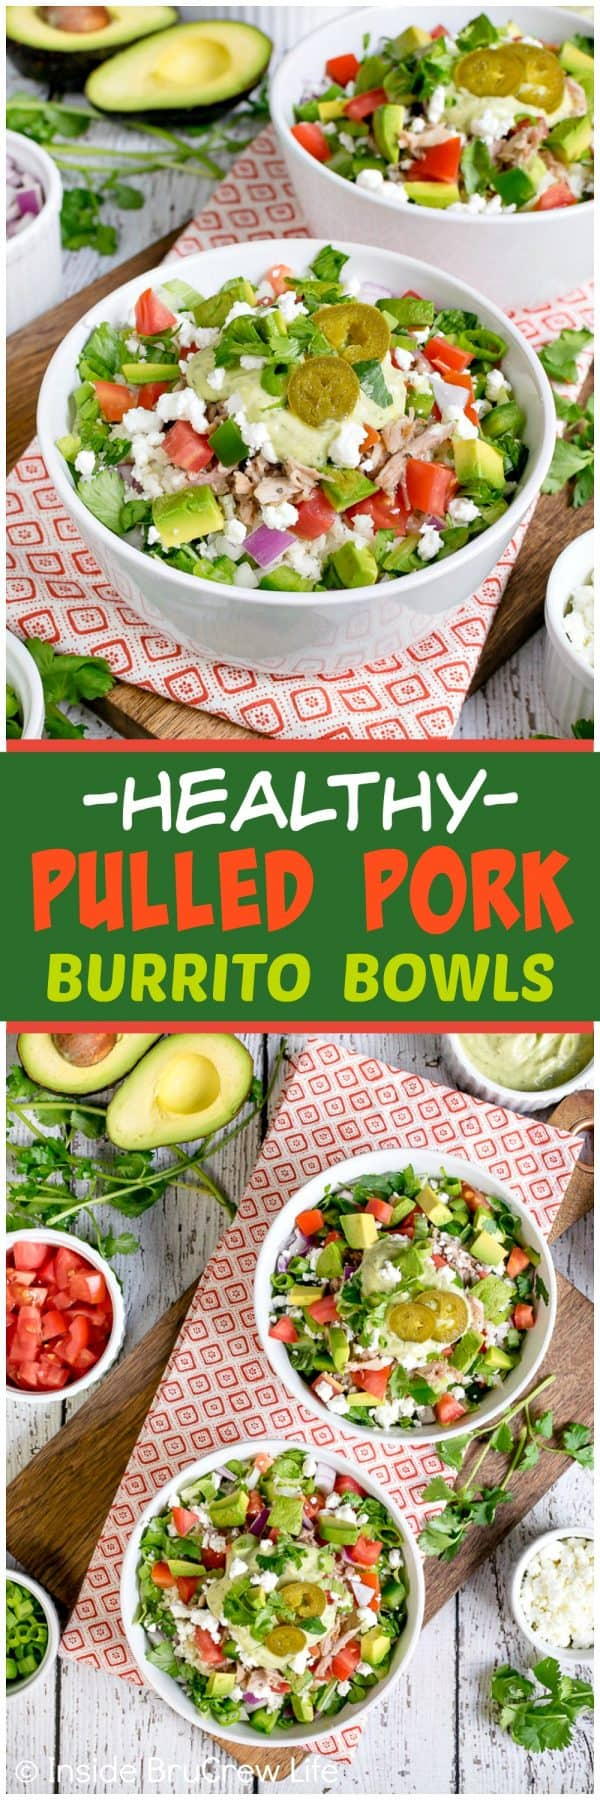 Healthy Pulled Pork Burrito Bowls - lots of lean and green veggies and pulled pork make these easy burrito bowls a dinner favorite. Make and prep this easy recipe for busy nights. #healthy #leanandgreen #pulledpork #burritobowls #dinner #recipe #easy